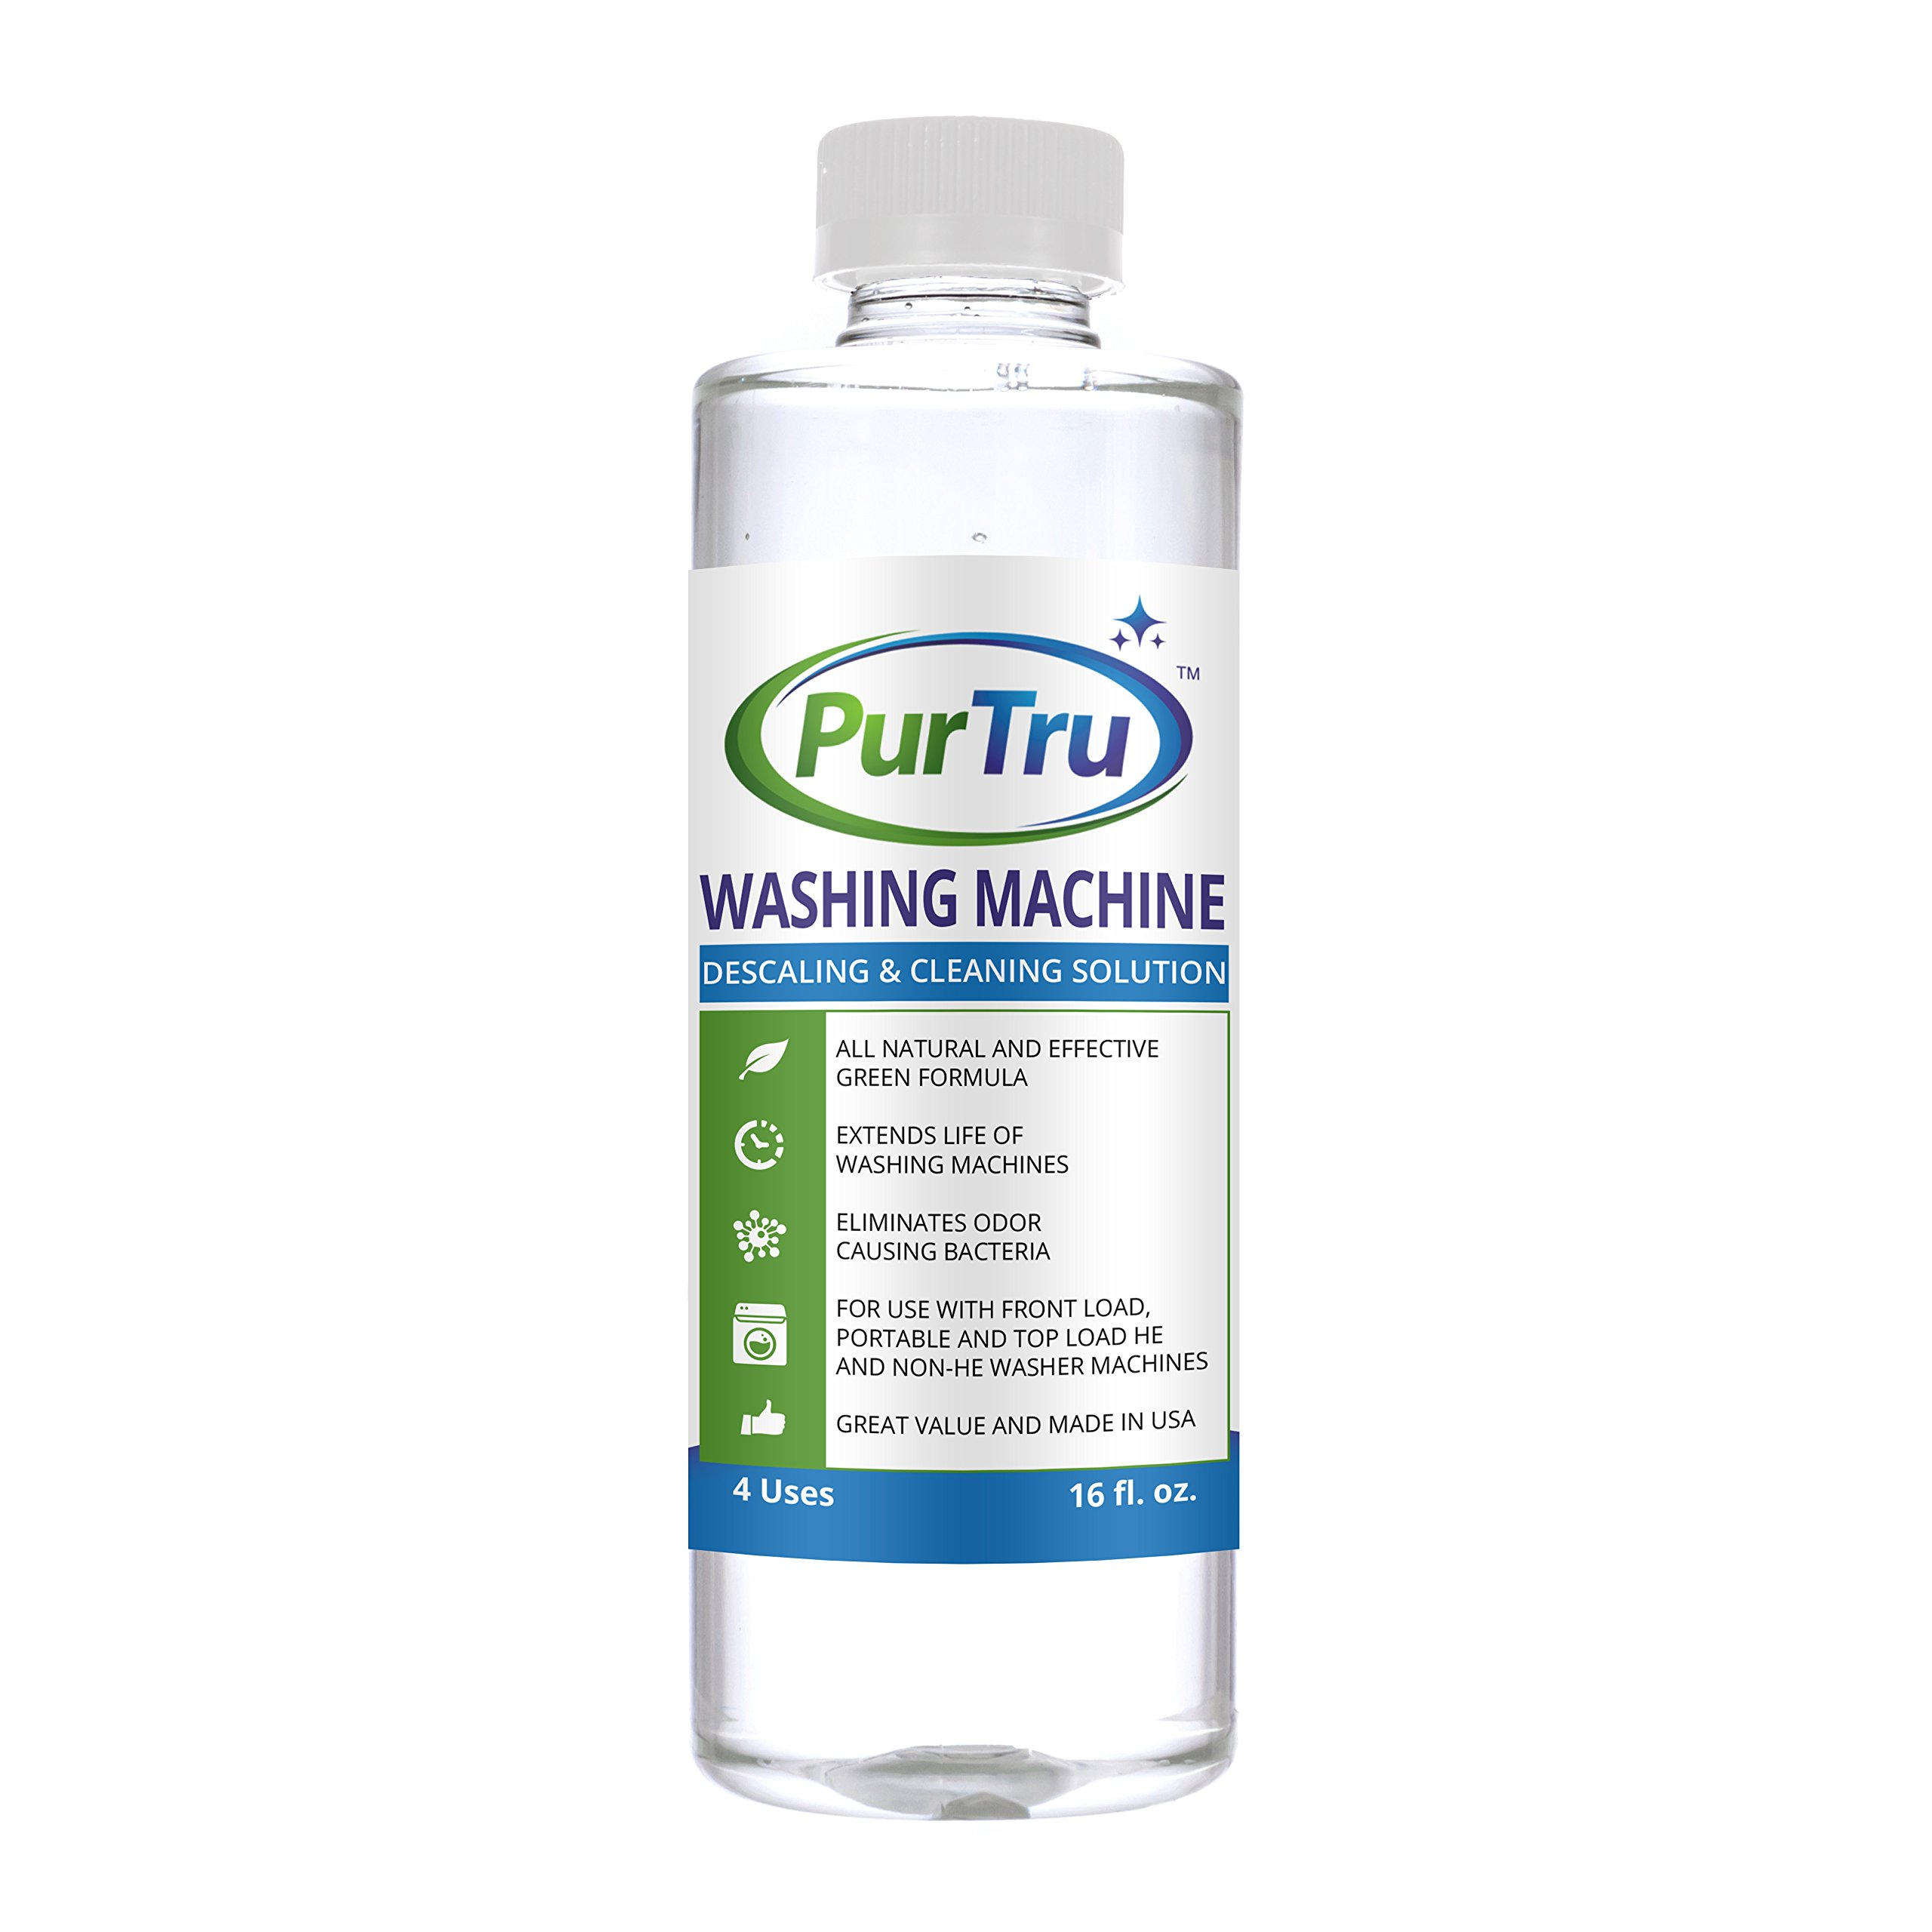 Washing Machine Cleaner - All Natural and Safe Descaling & Cleaning Solution For Maytag, Whirlpool, Kenmore And All Top Load, Front Load, Portable, HE and Non-HE Washers